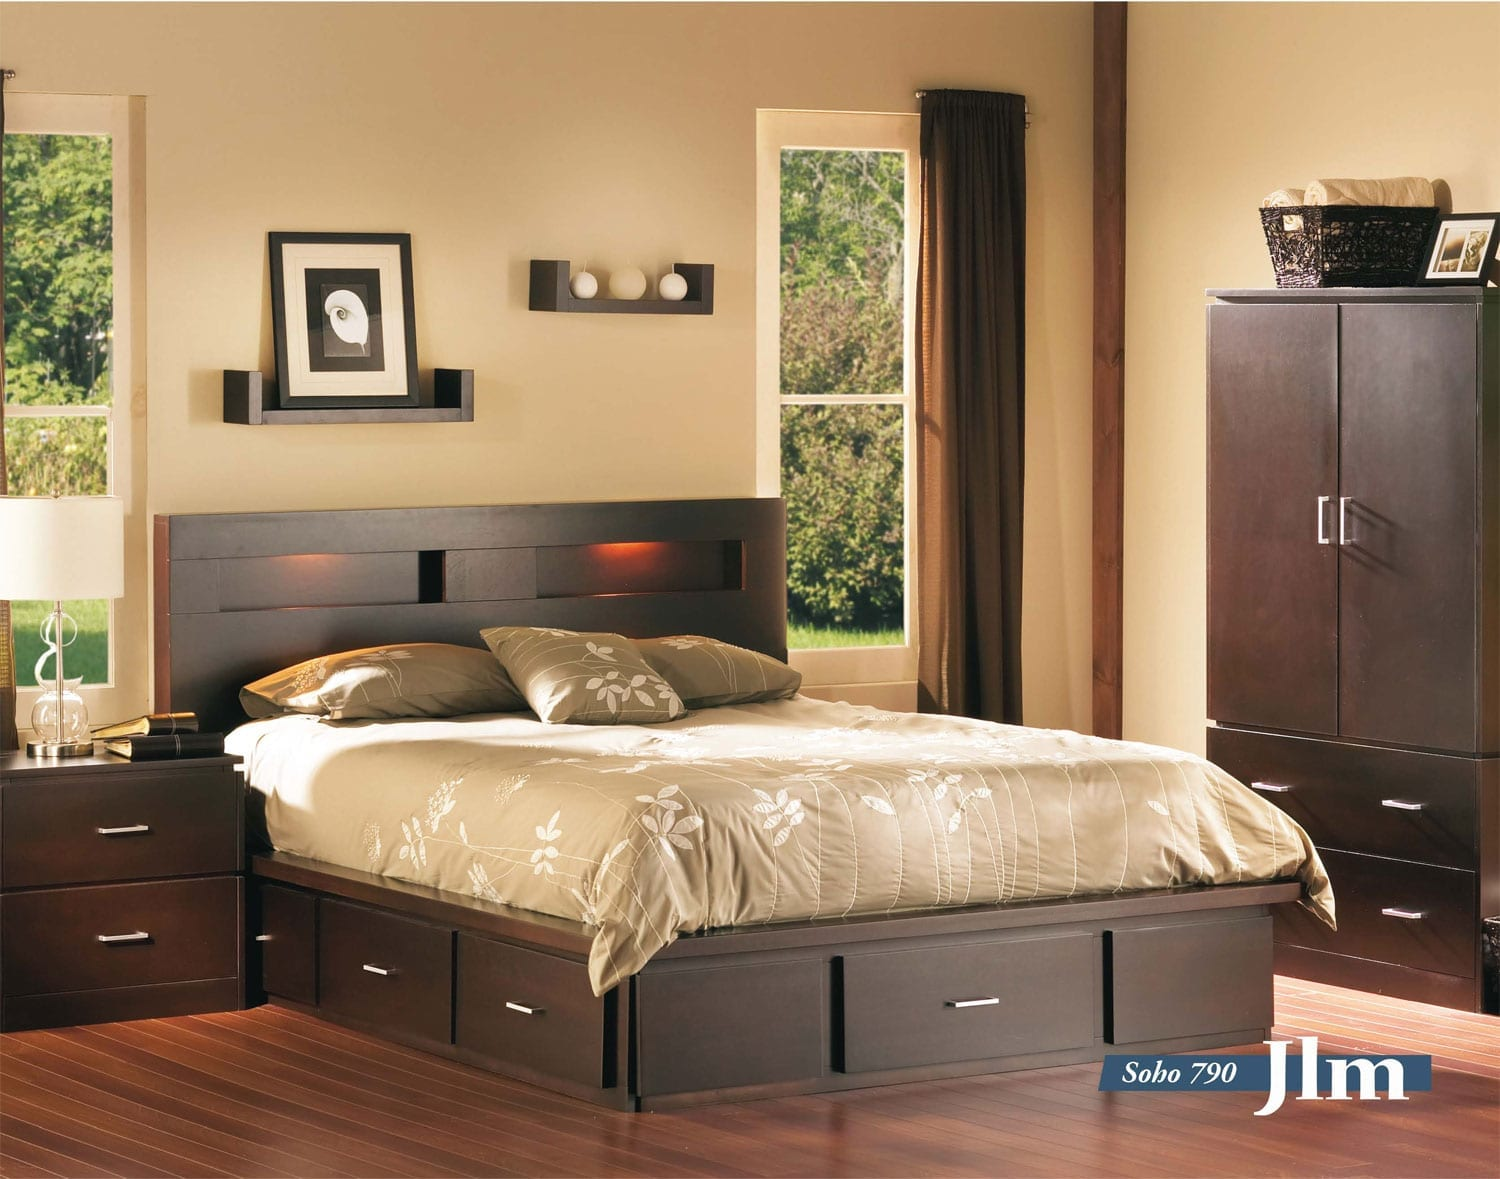 52 Bedroom Sets For Sale In Mississauga Free